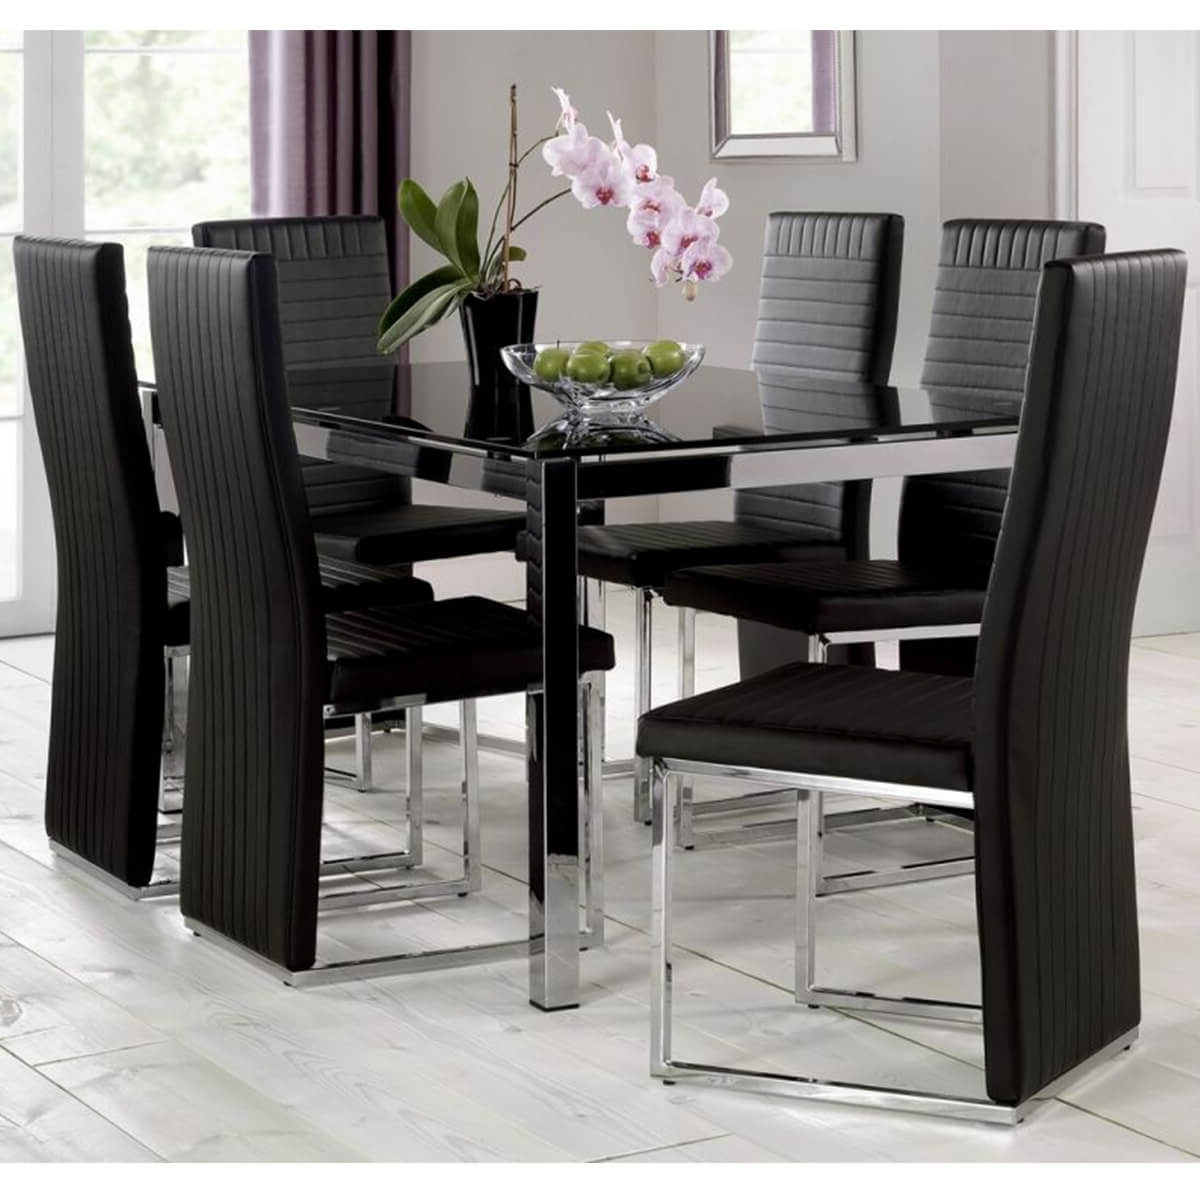 Trendy Black Glass Dining Tables And 4 Chairs Throughout Tempo Black Dining Table With Black Chairs (View 5 of 25)